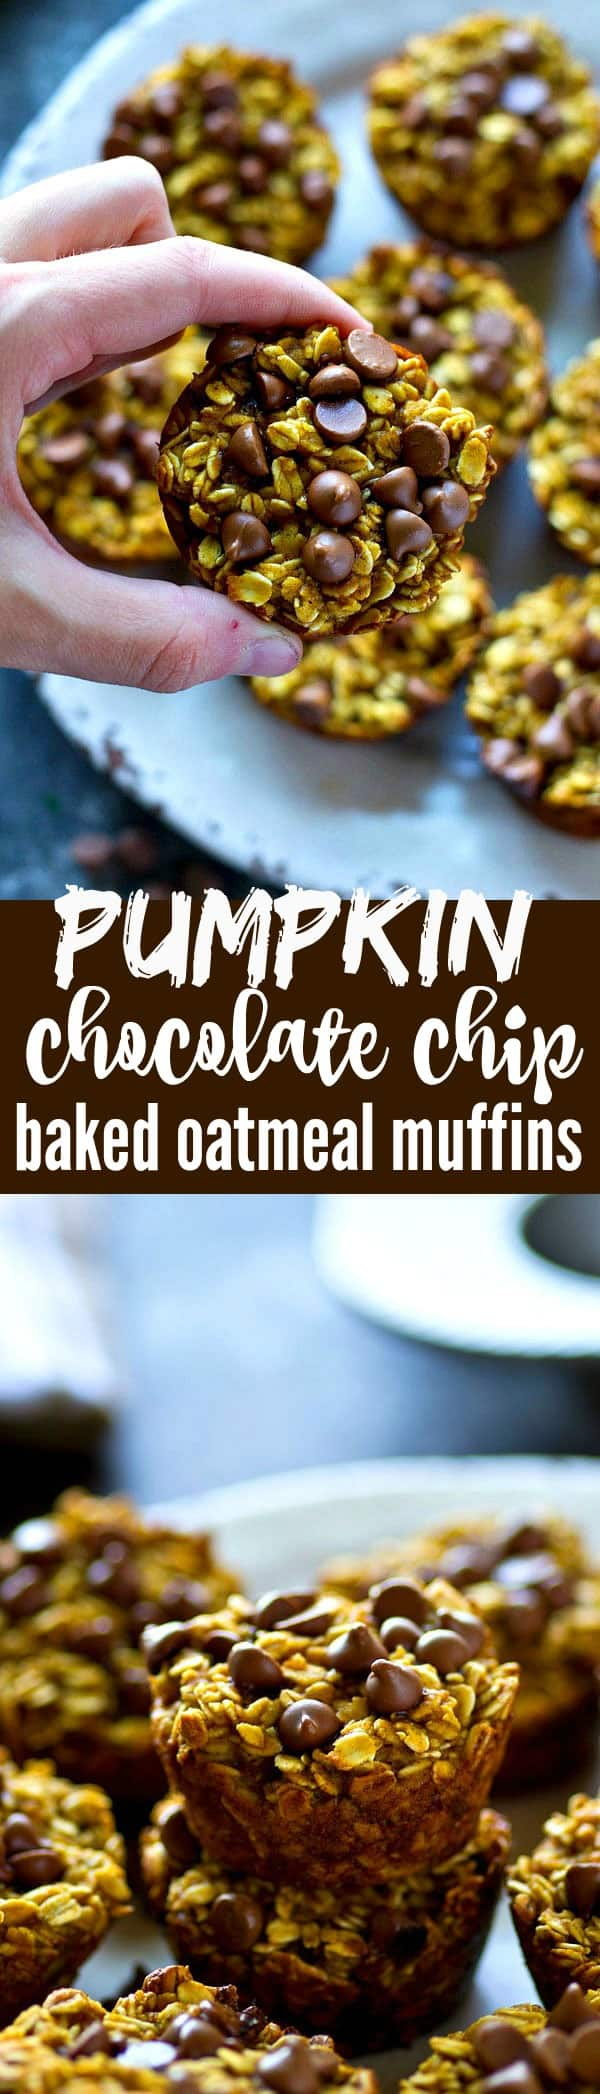 Kick off your weekday mornings the EASIEST and healthiest way with these pumpkin chocolate chip baked oatmeal muffins! Easy to throw together and they freeze beautifully.